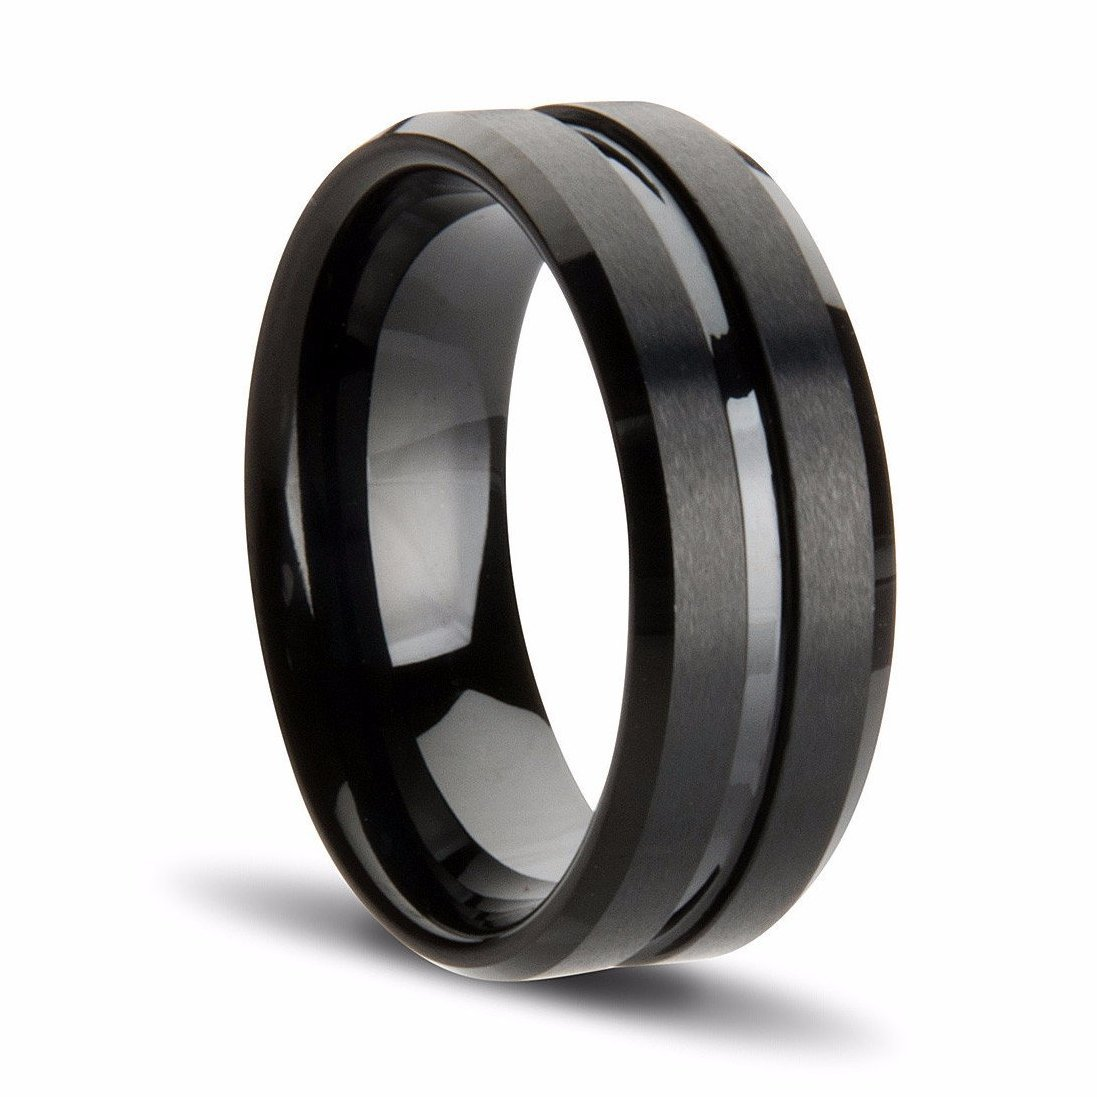 anniversary new zealot black sizes beveled products brushed tungsten custom step available edge ring york band wedding mens bevel rings engagement womens yankees